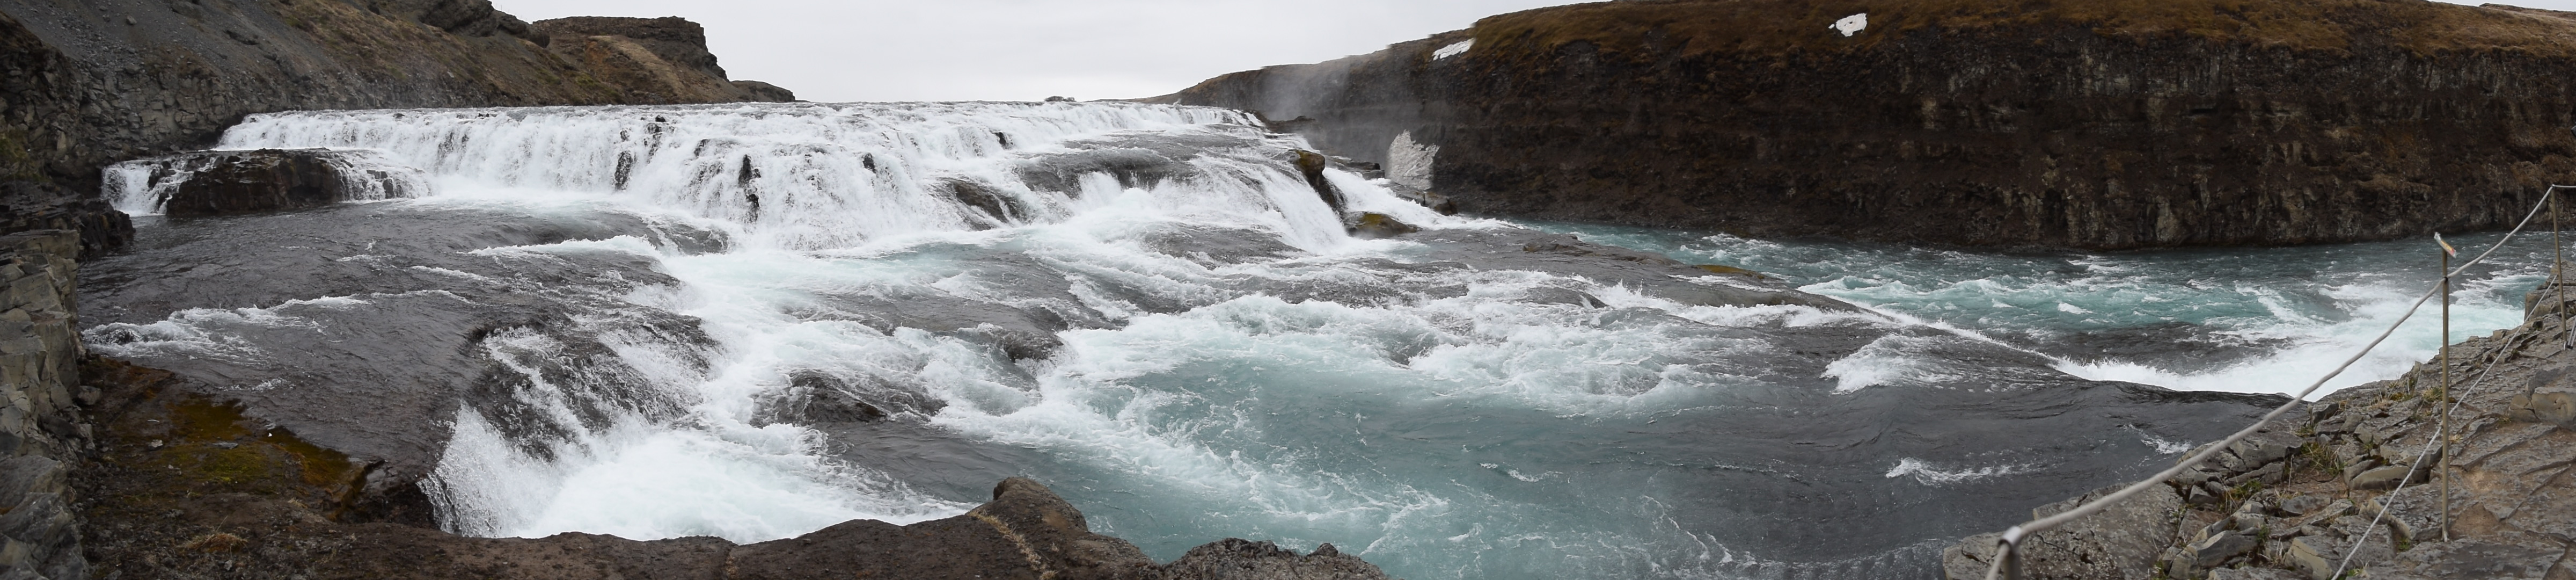 Gullfoss Waterfall from the lower lookout